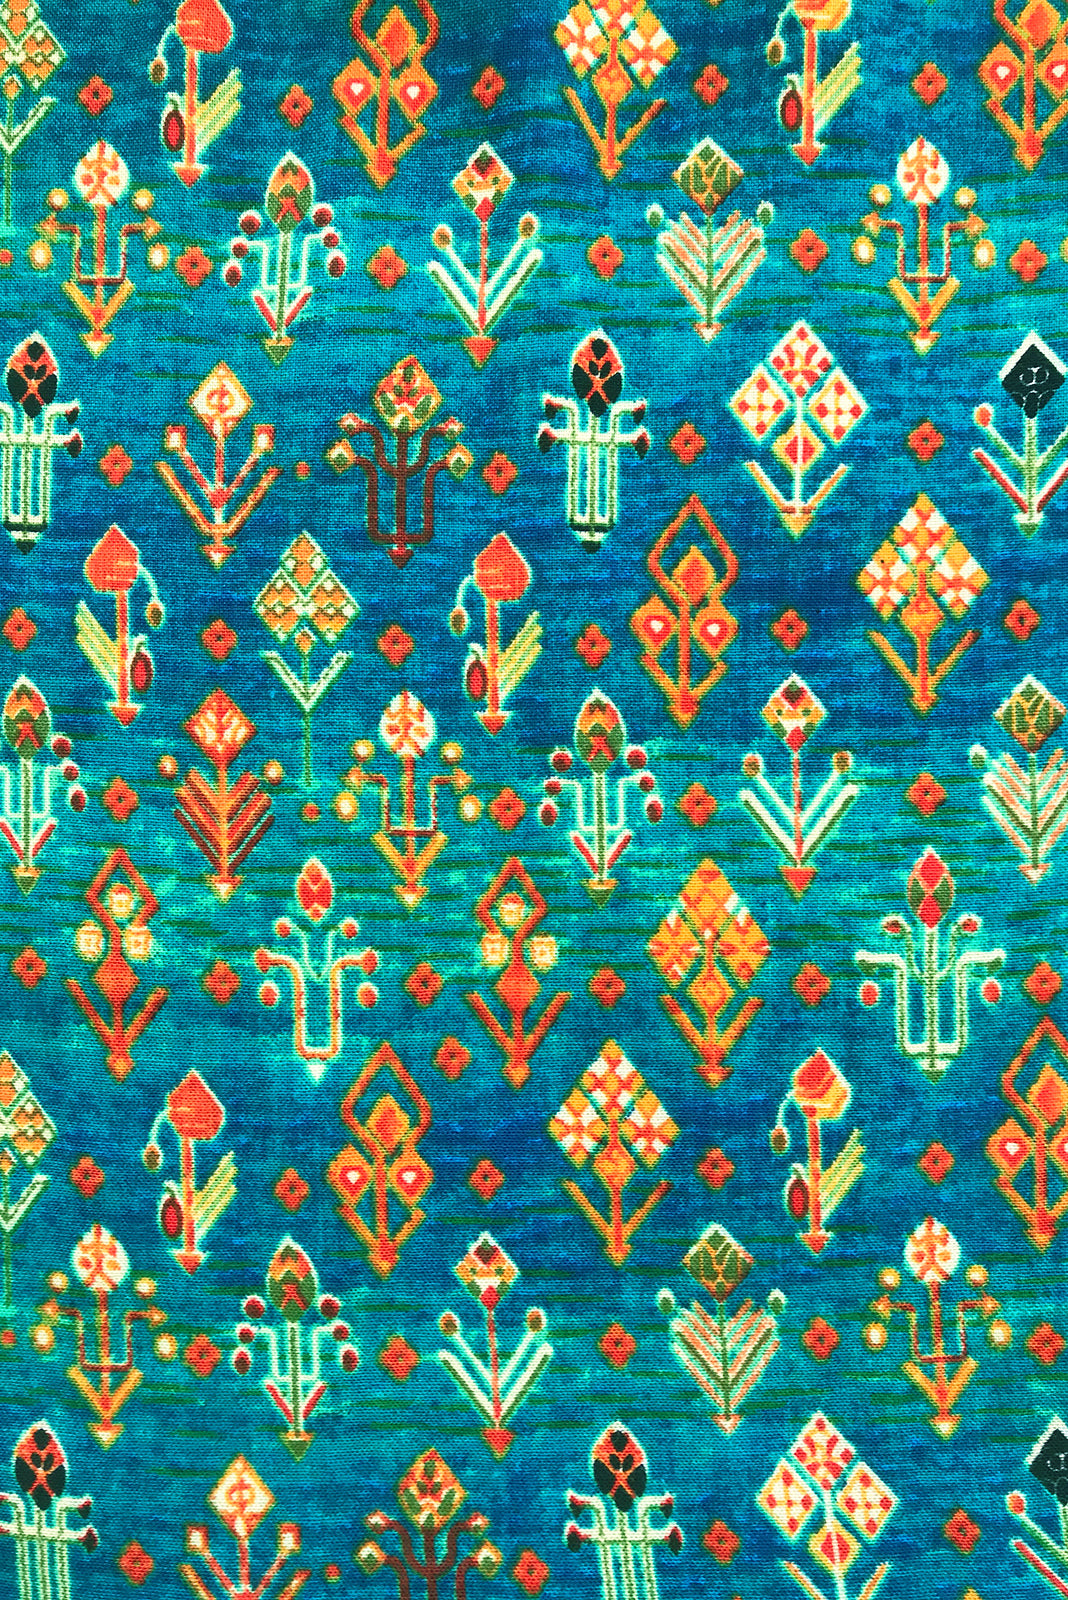 Fabric Swatch of Valencia Turquoise Aztec Maxi Skirt featuring cotton/ viscose blend in blue/green aztec print.